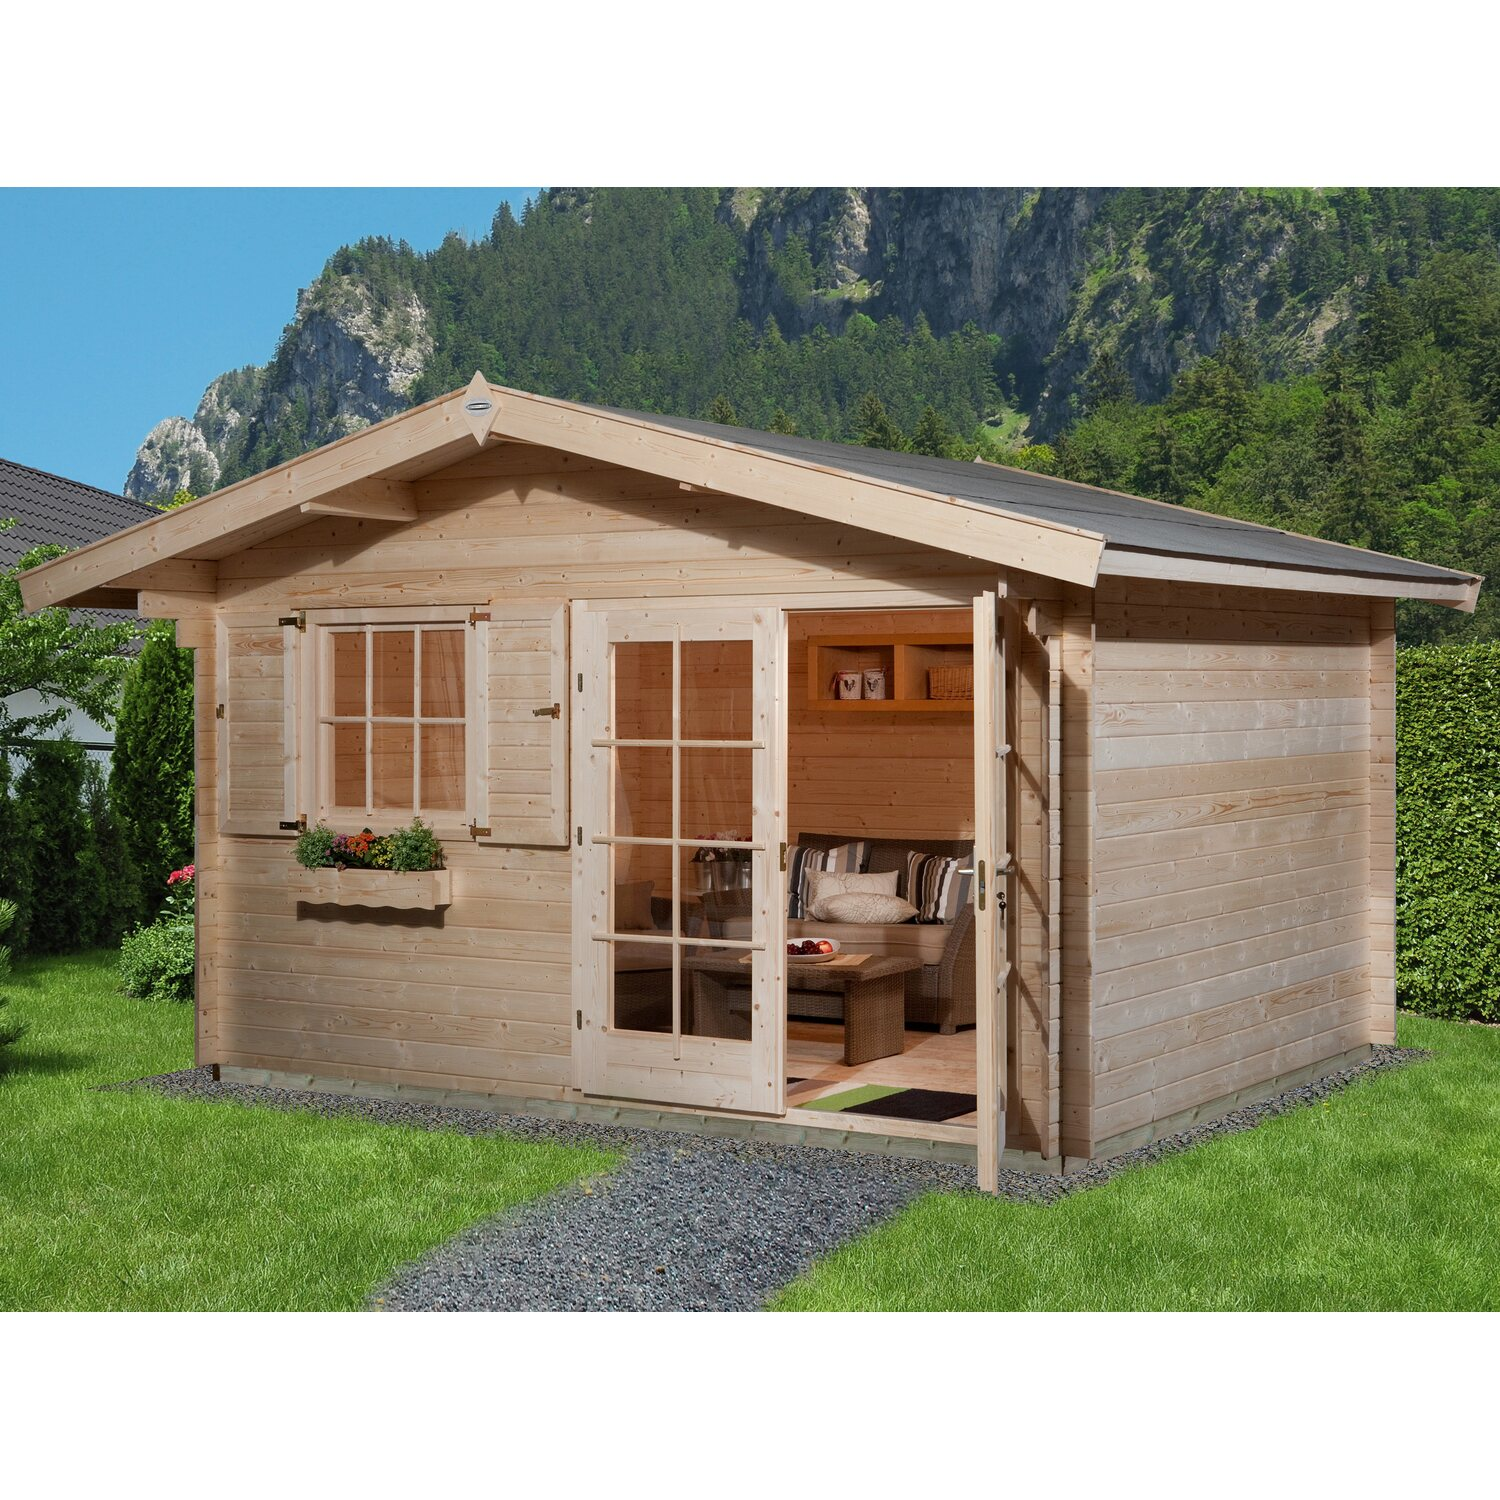 obi holz gartenhaus panorama b mit vordach b x t 380 cm x 380 cm kaufen bei obi. Black Bedroom Furniture Sets. Home Design Ideas